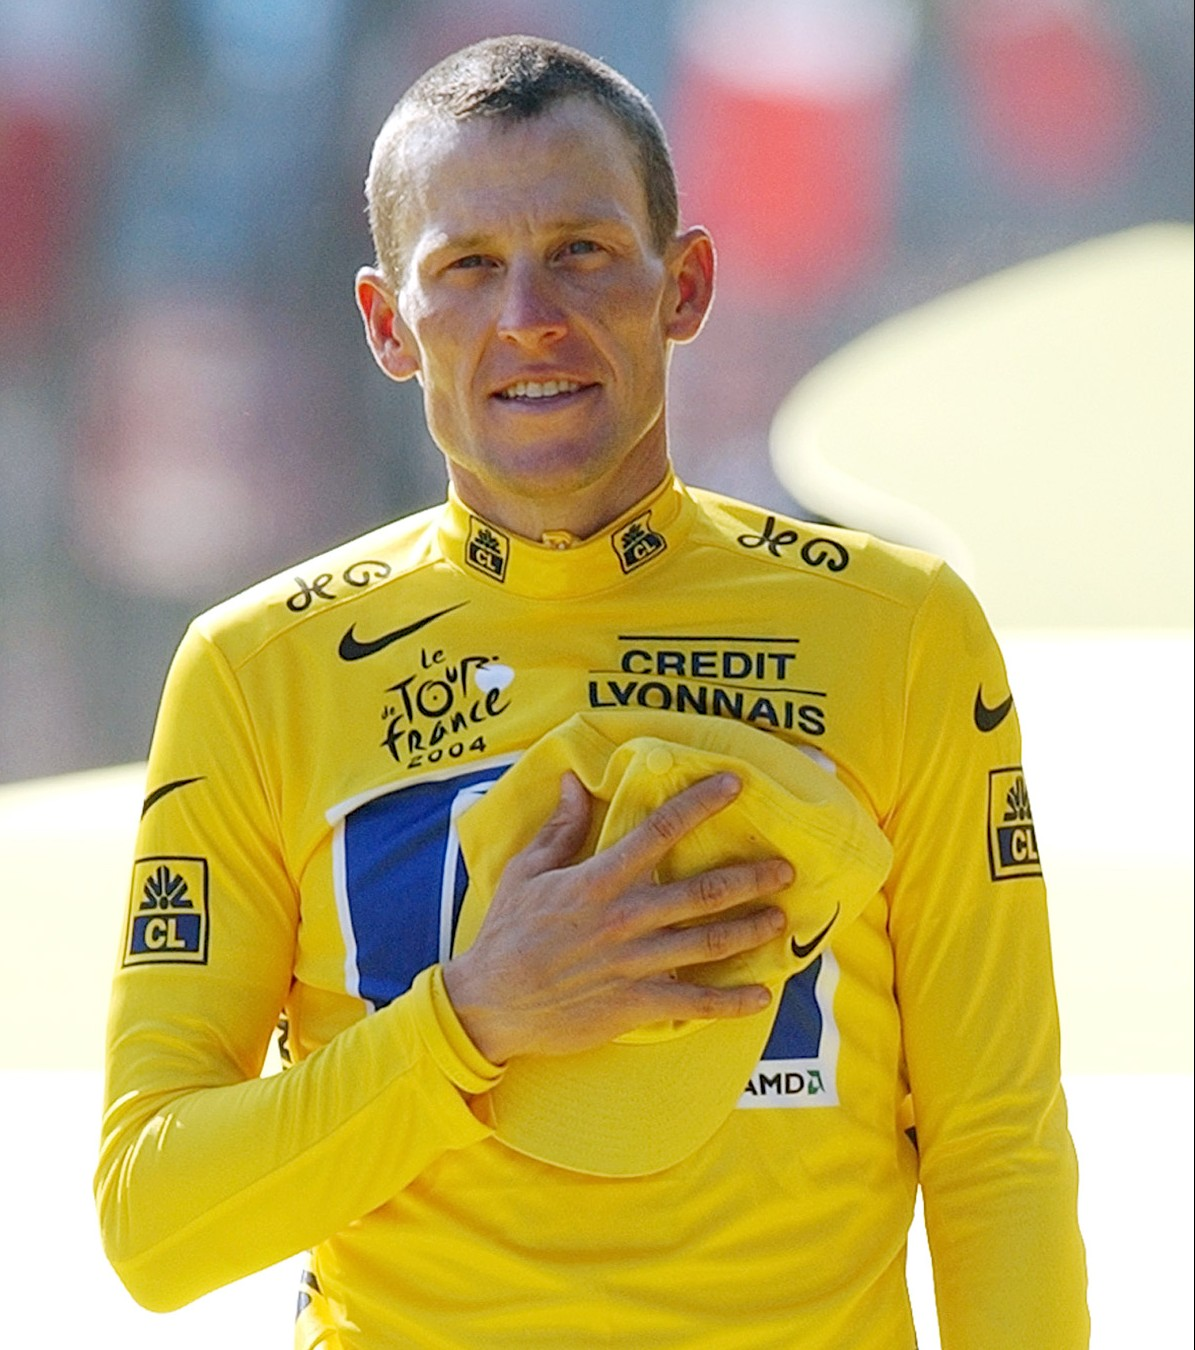 Lance Armstrong - 7x Tour de France Winner (= largest sports fraud ever?) Armstrong-e1345853276957